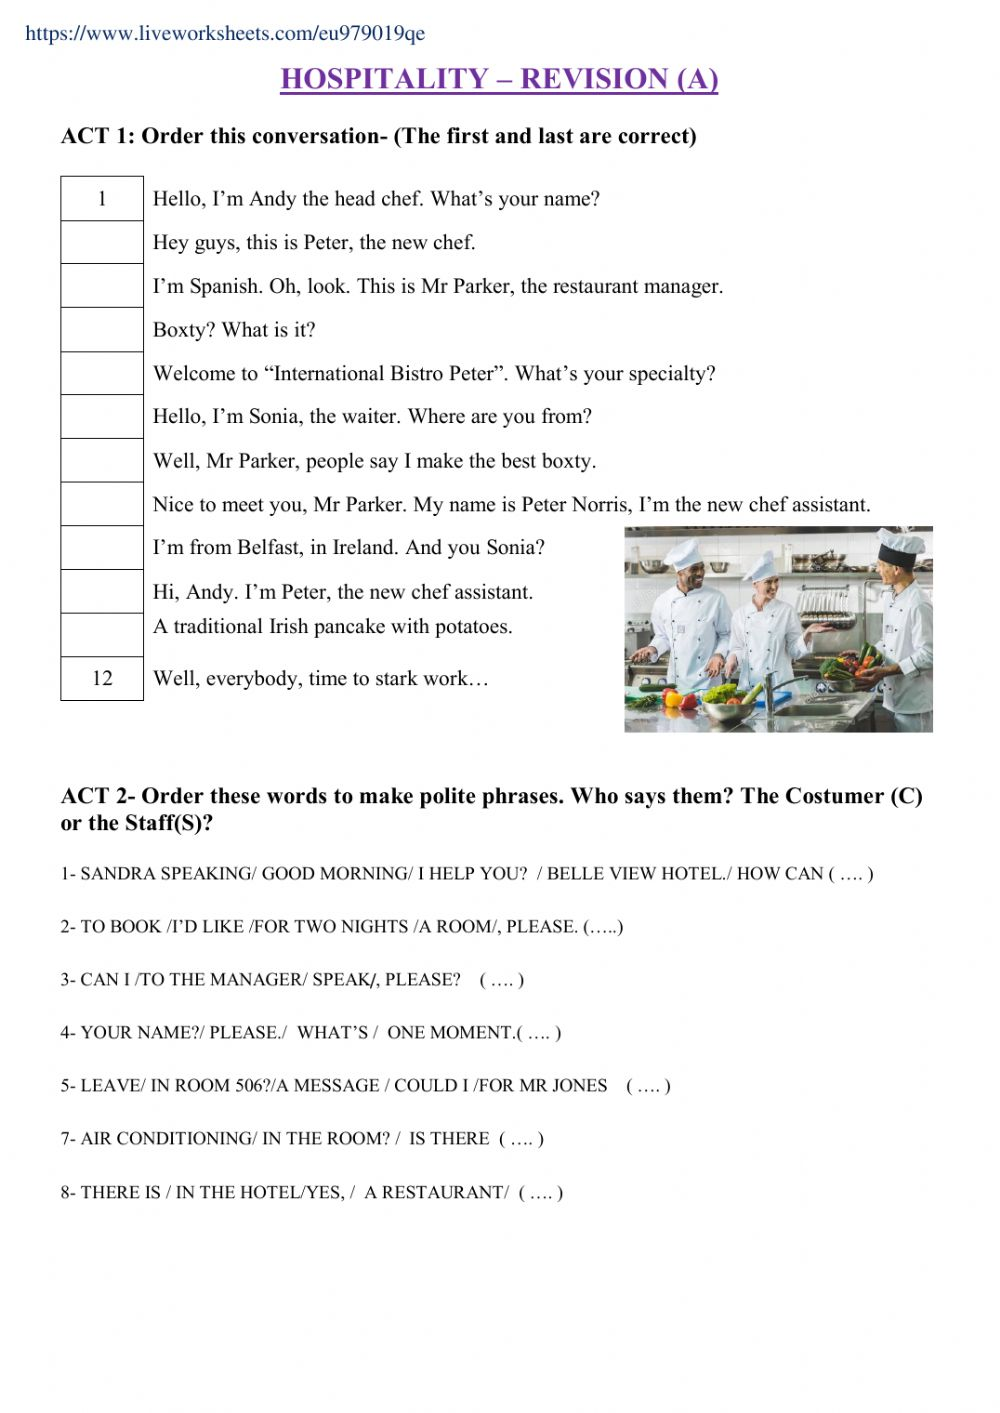 hight resolution of Hospitality- Revision A worksheet